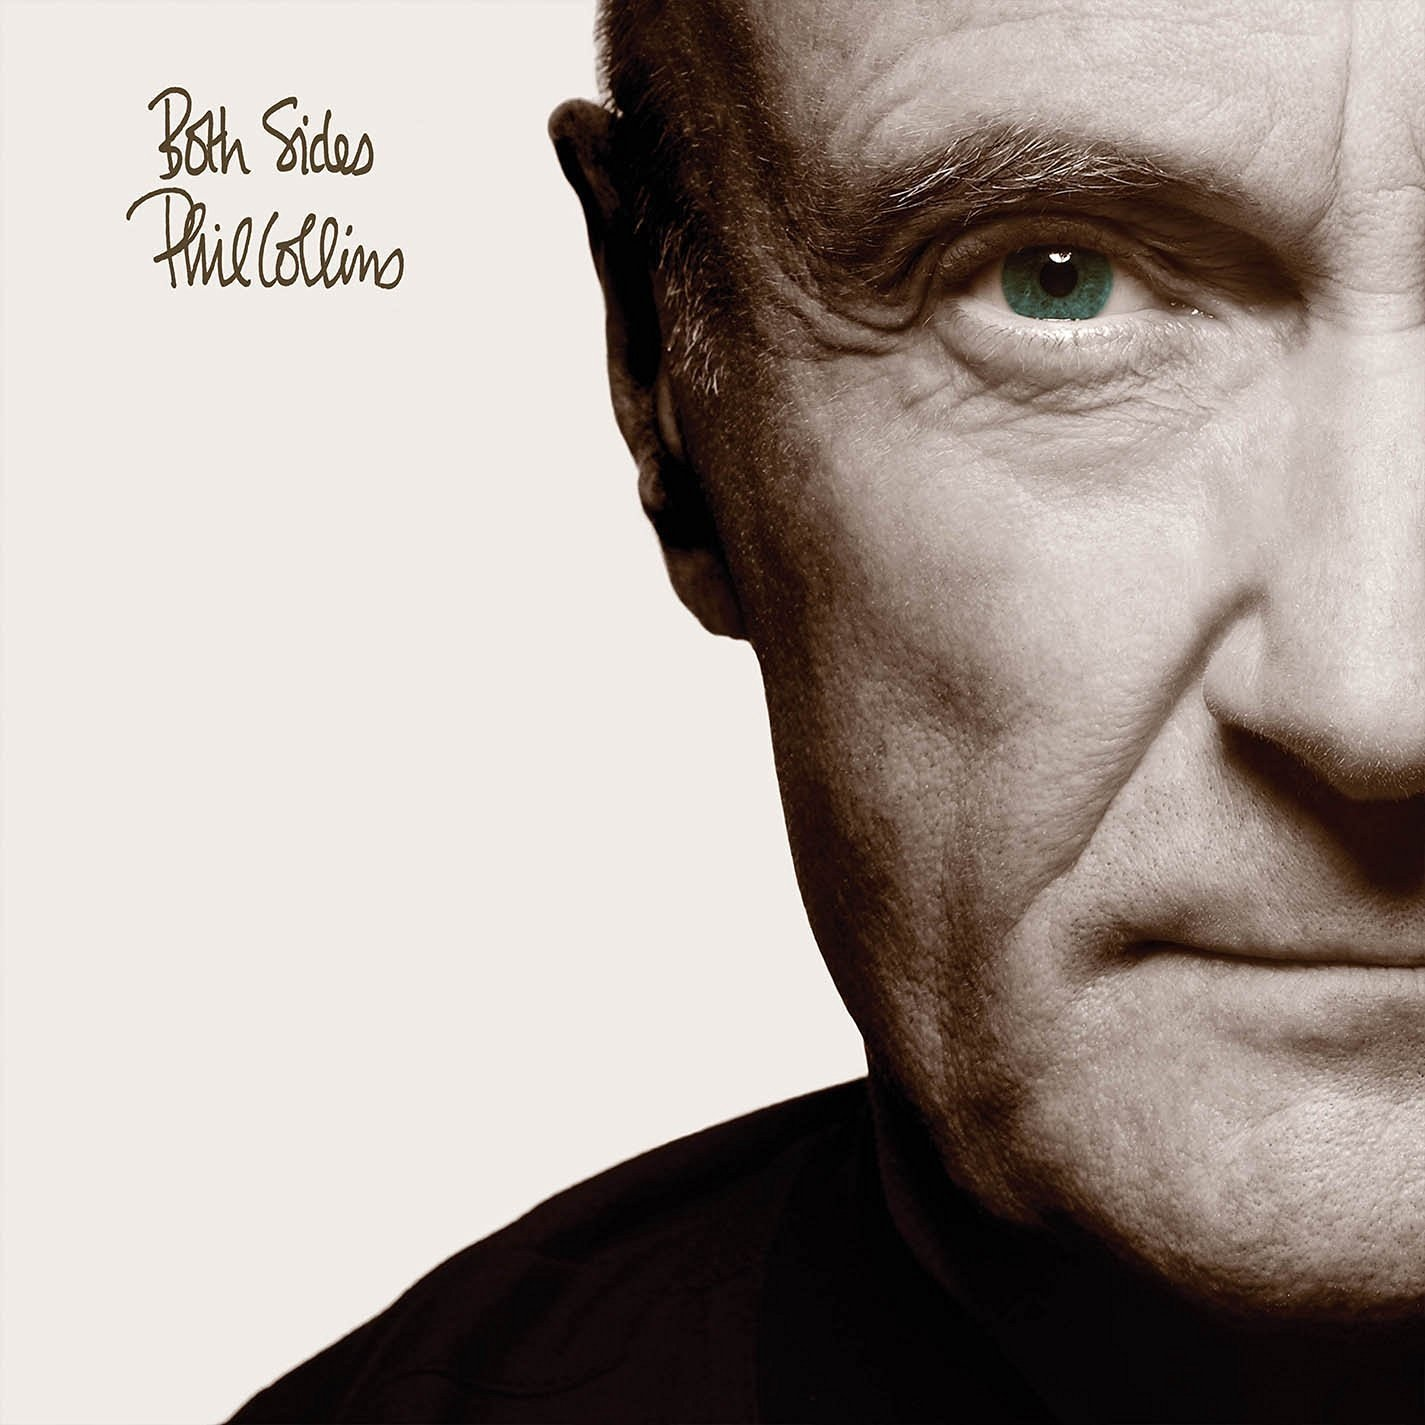 Phil Collins. Both Sides. Remastered (2 LP) виниловая пластинка phil collins hello i must be going remastered